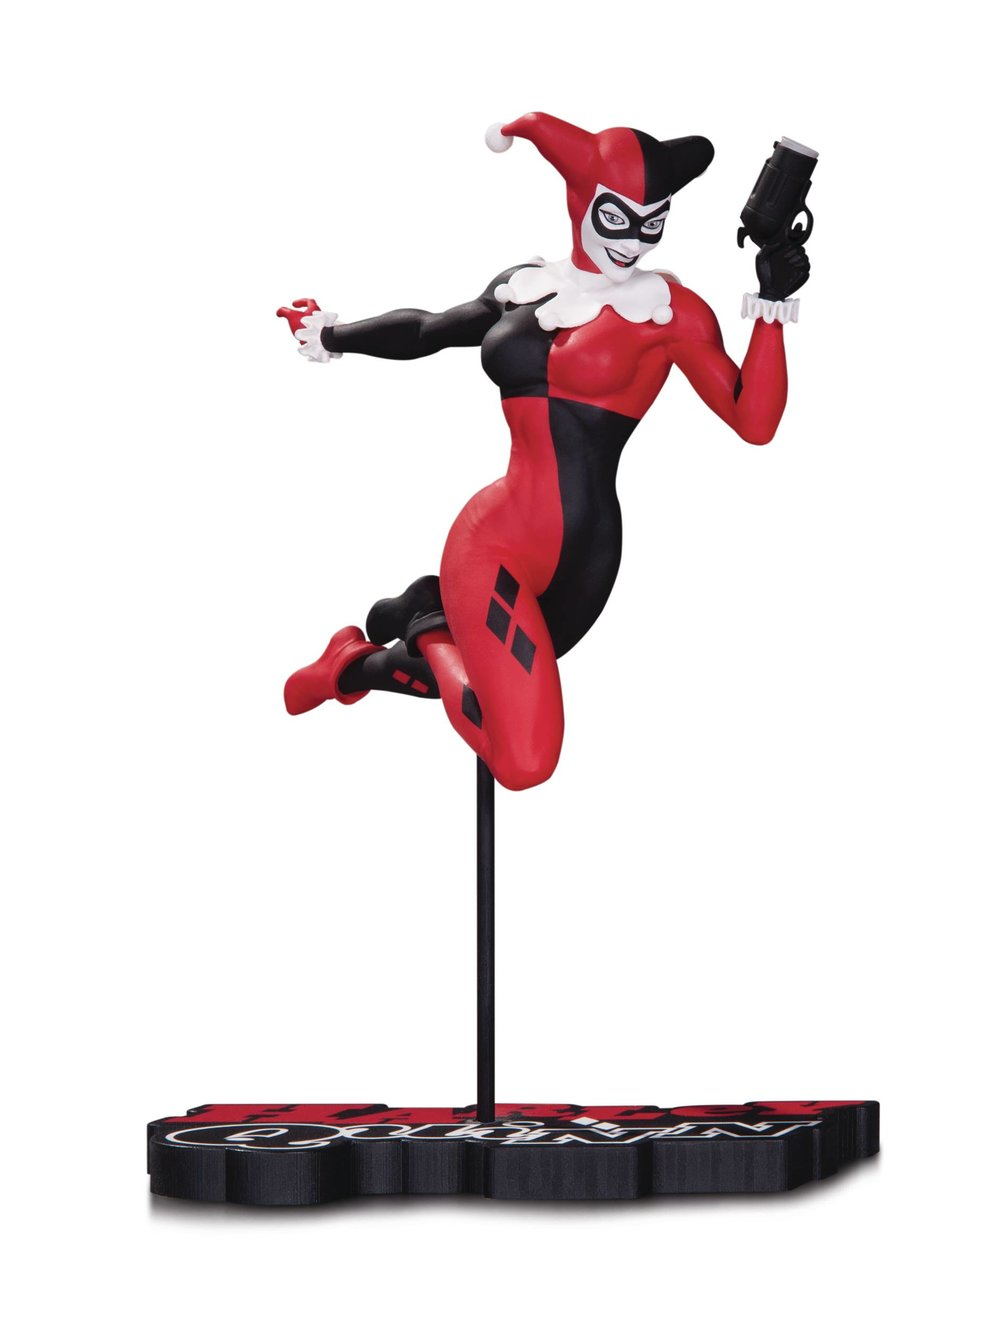 HARLEY QUINN RED WHITE & BLACK STATUE BY TERRY DODSON.jpg